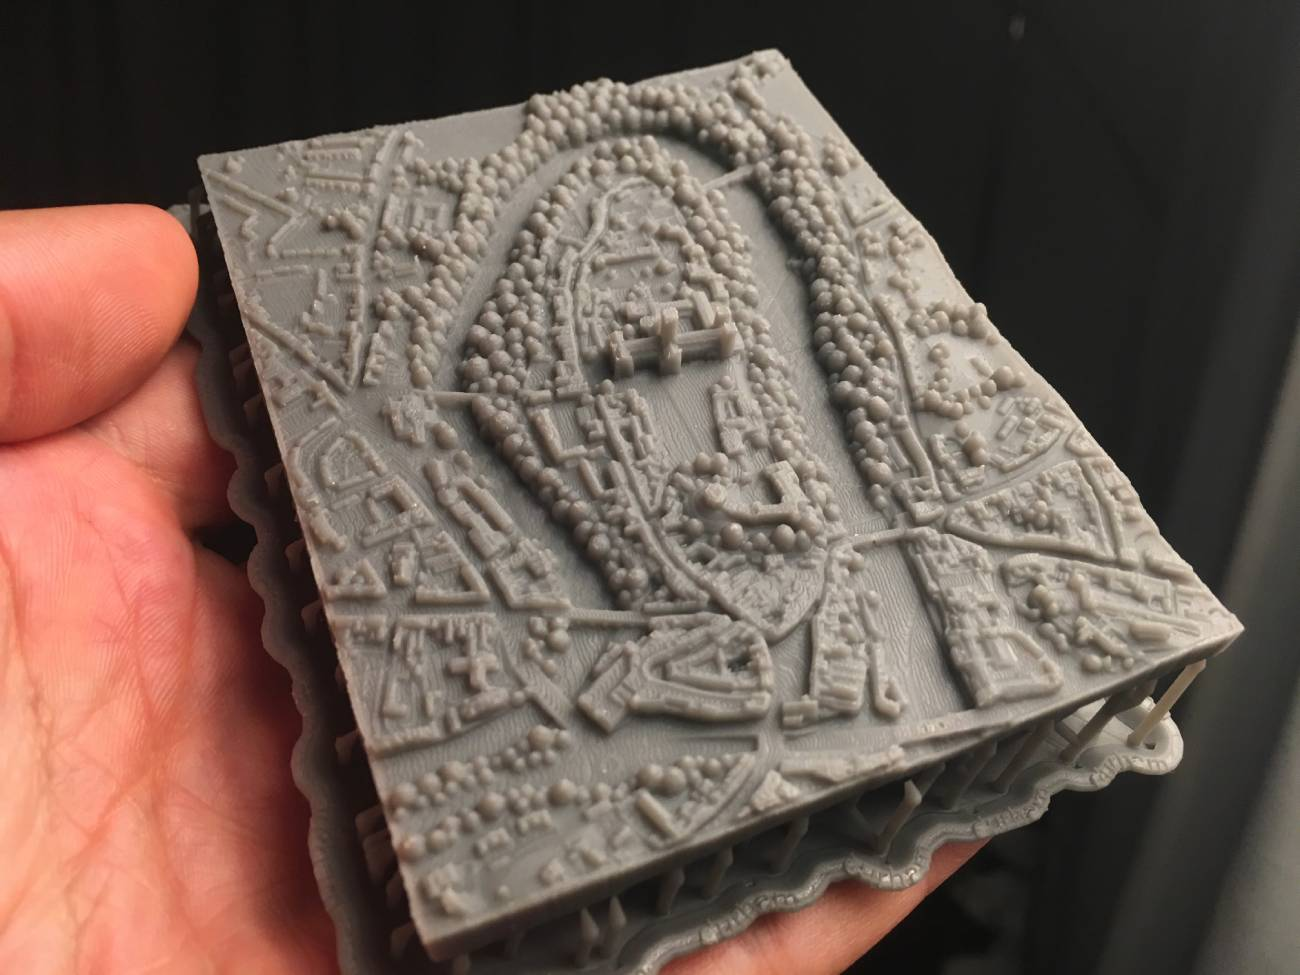 This amazing 3D printed Durham model fits in the palm of your hand